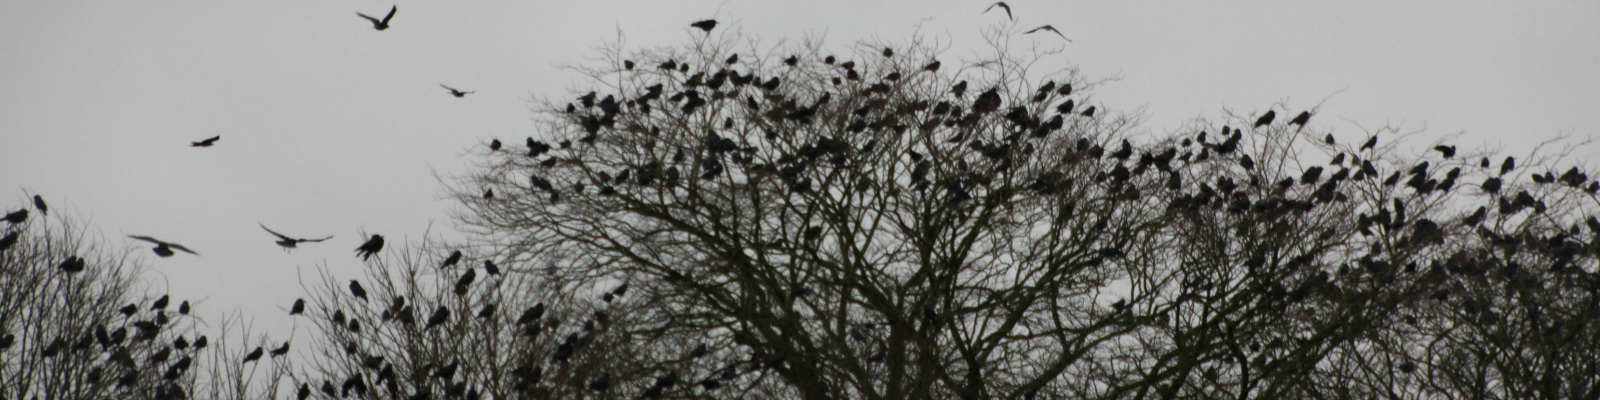 IMG_5675-1600x-crows